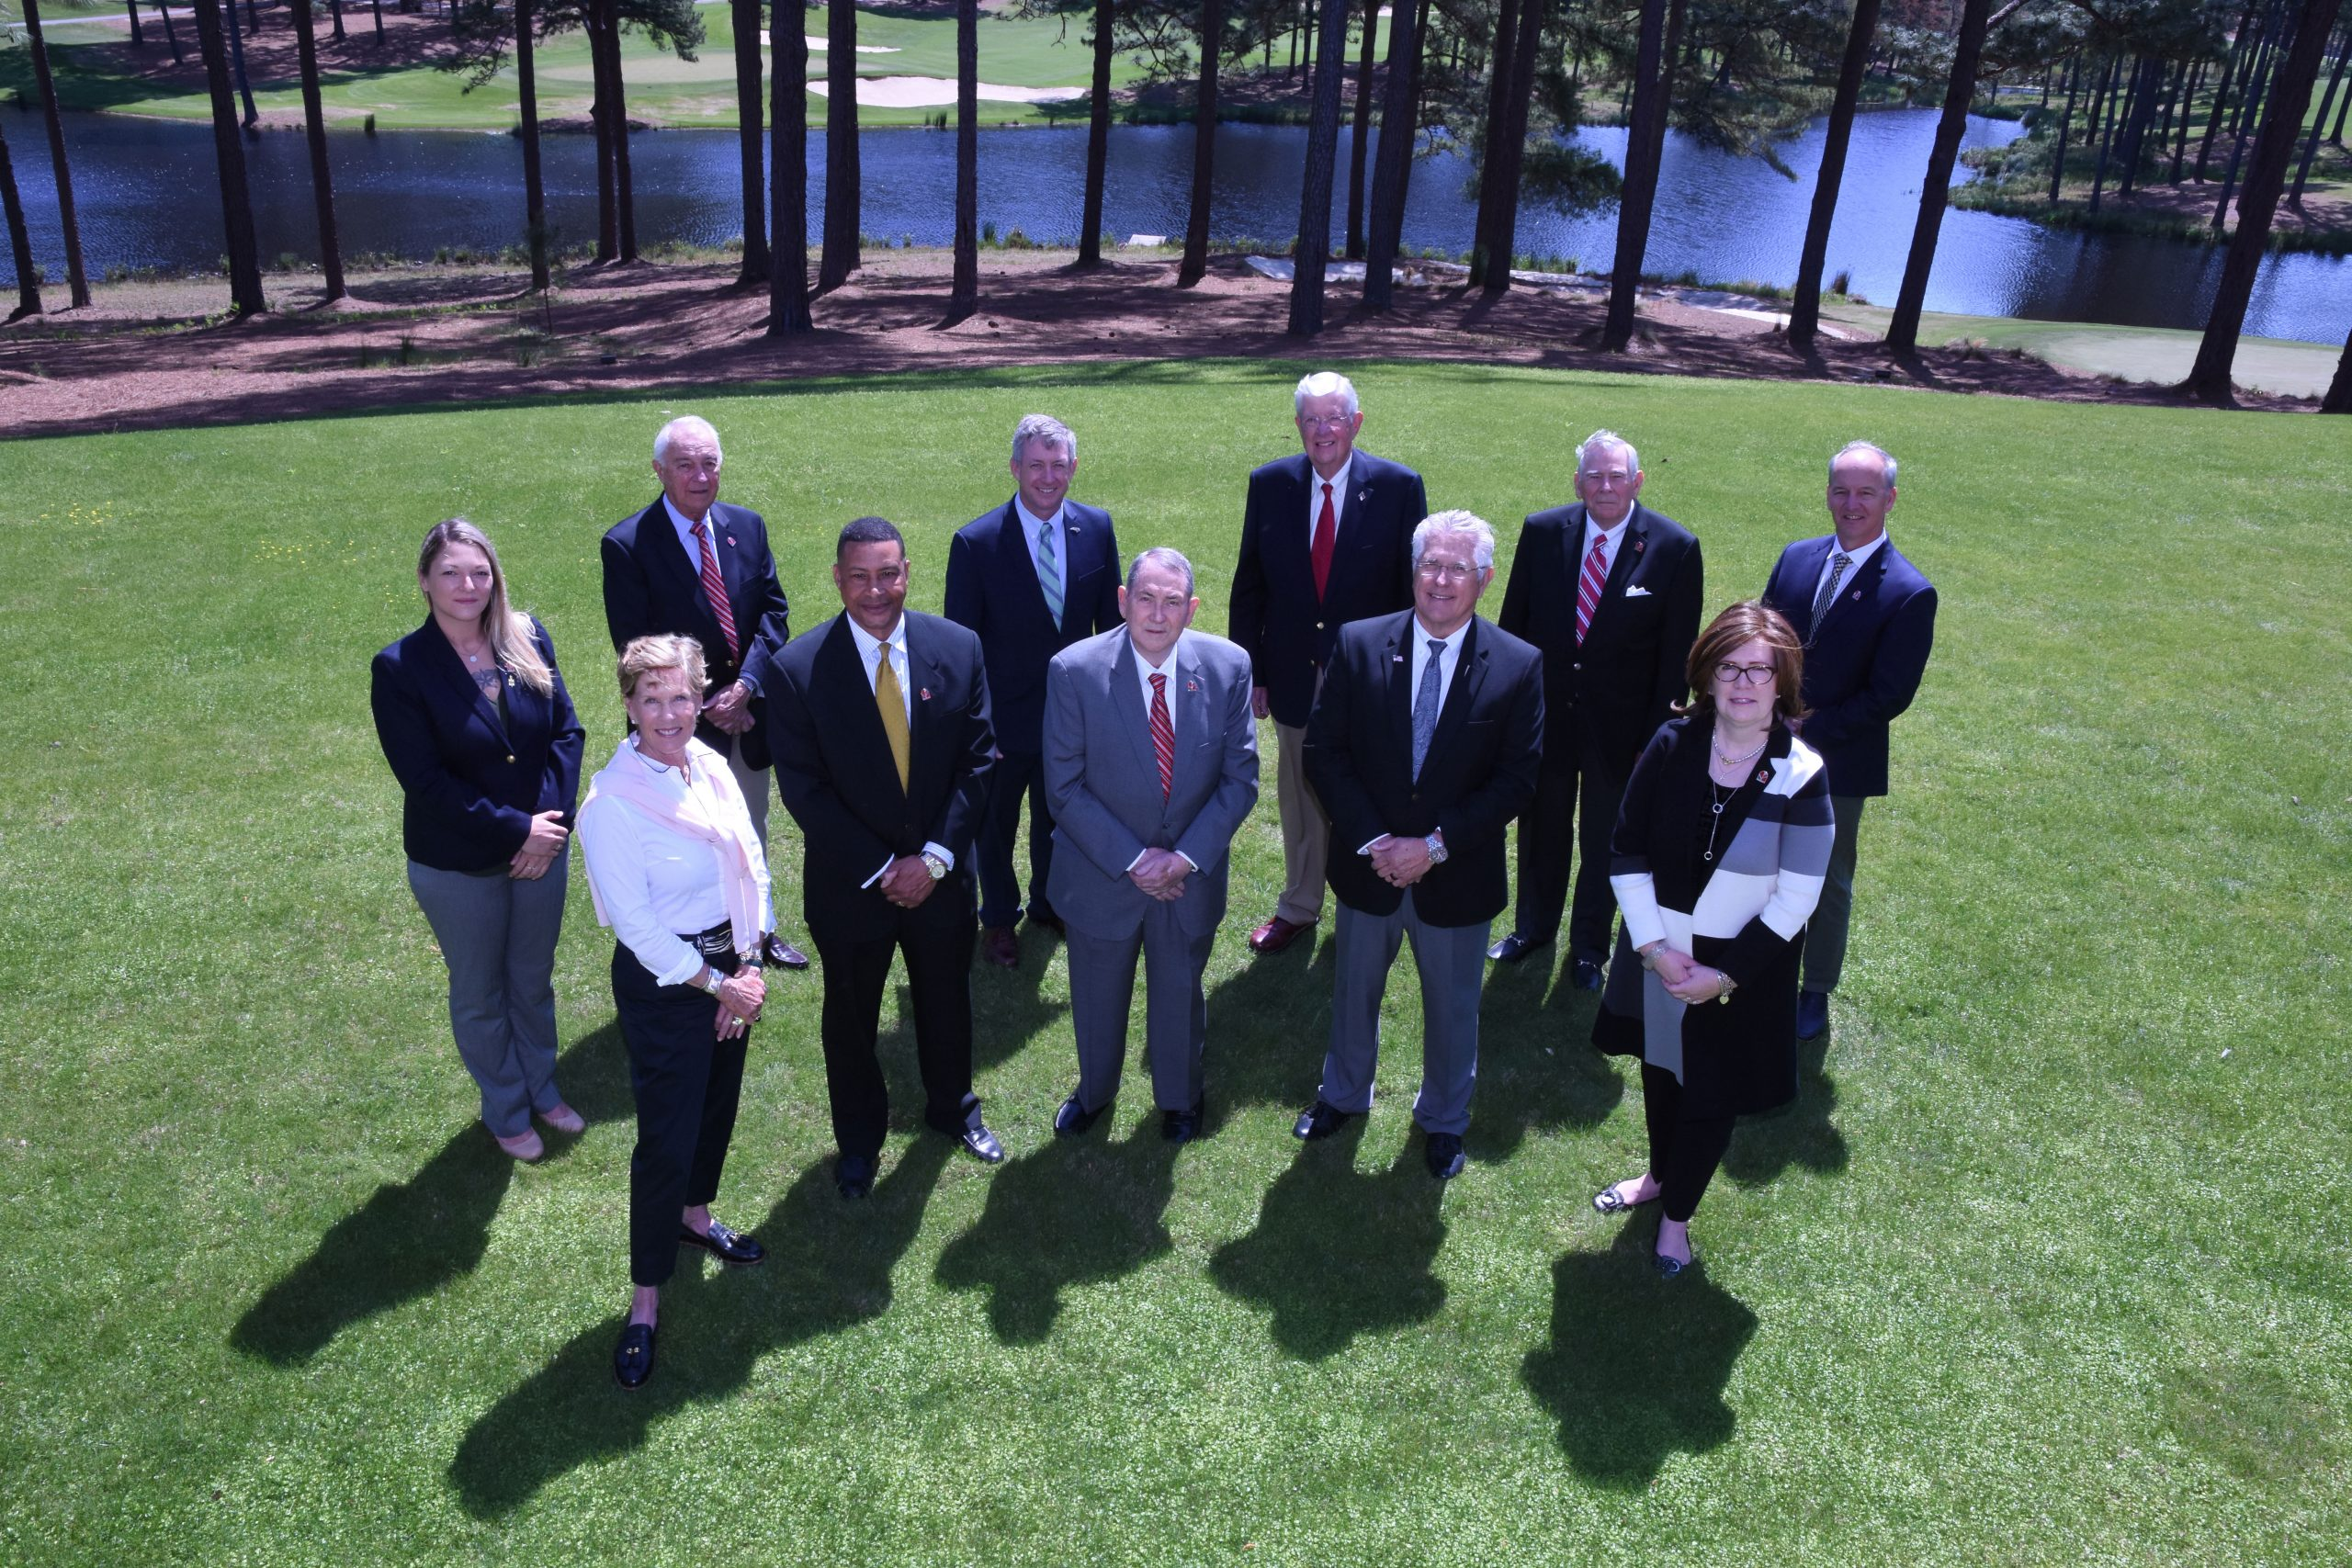 Picture of the Sandhills Community College Board of Trustees